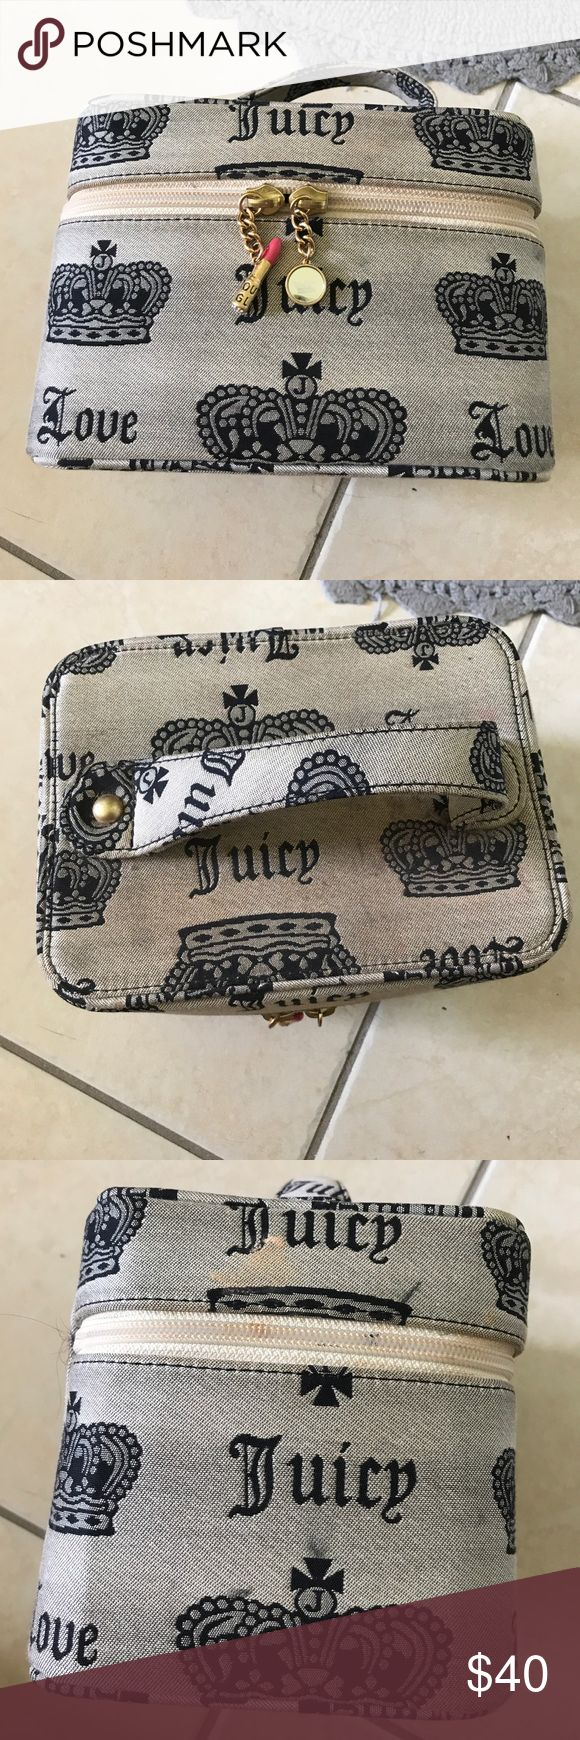 Vintage juicy couture make up case It's in good condition as far as rips or tears but it does have some make up stains which can be removed. The inside is clean. Juicy Couture Bags Cosmetic Bags & Cases